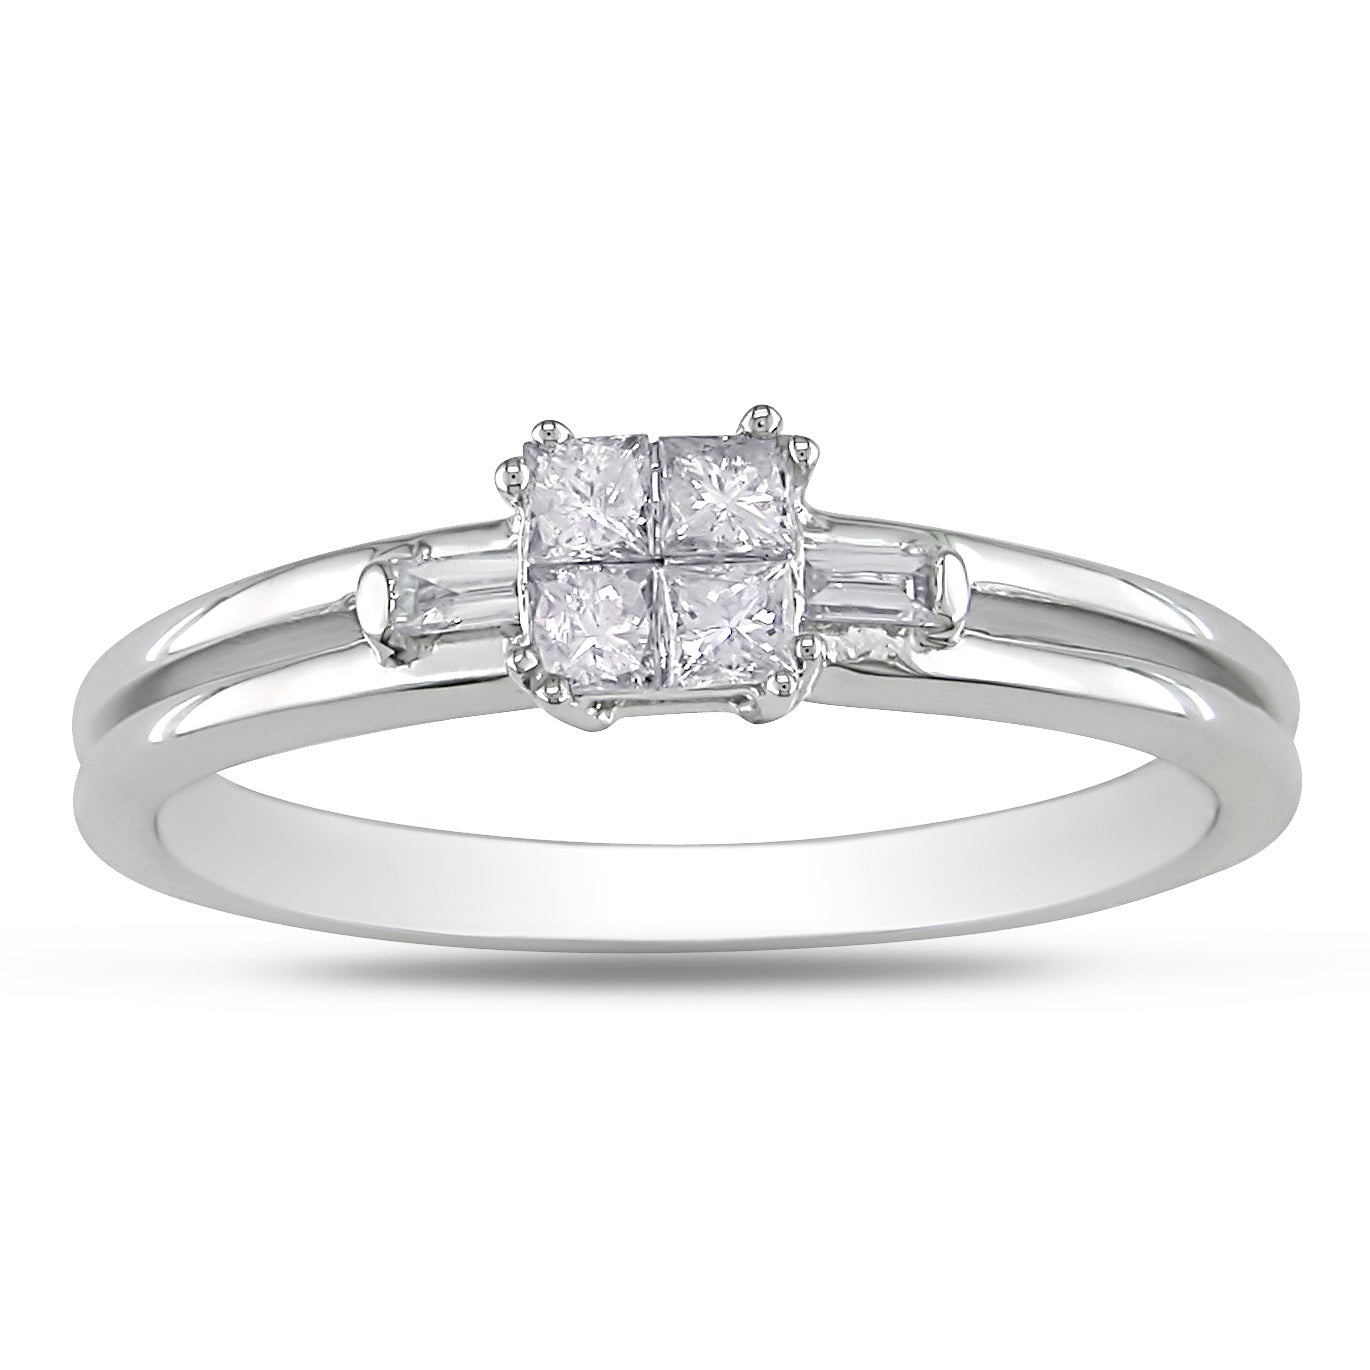 Miadora 14k White Gold 1/4ct TDW Princess Diamond Ring (G-H, I1-2)